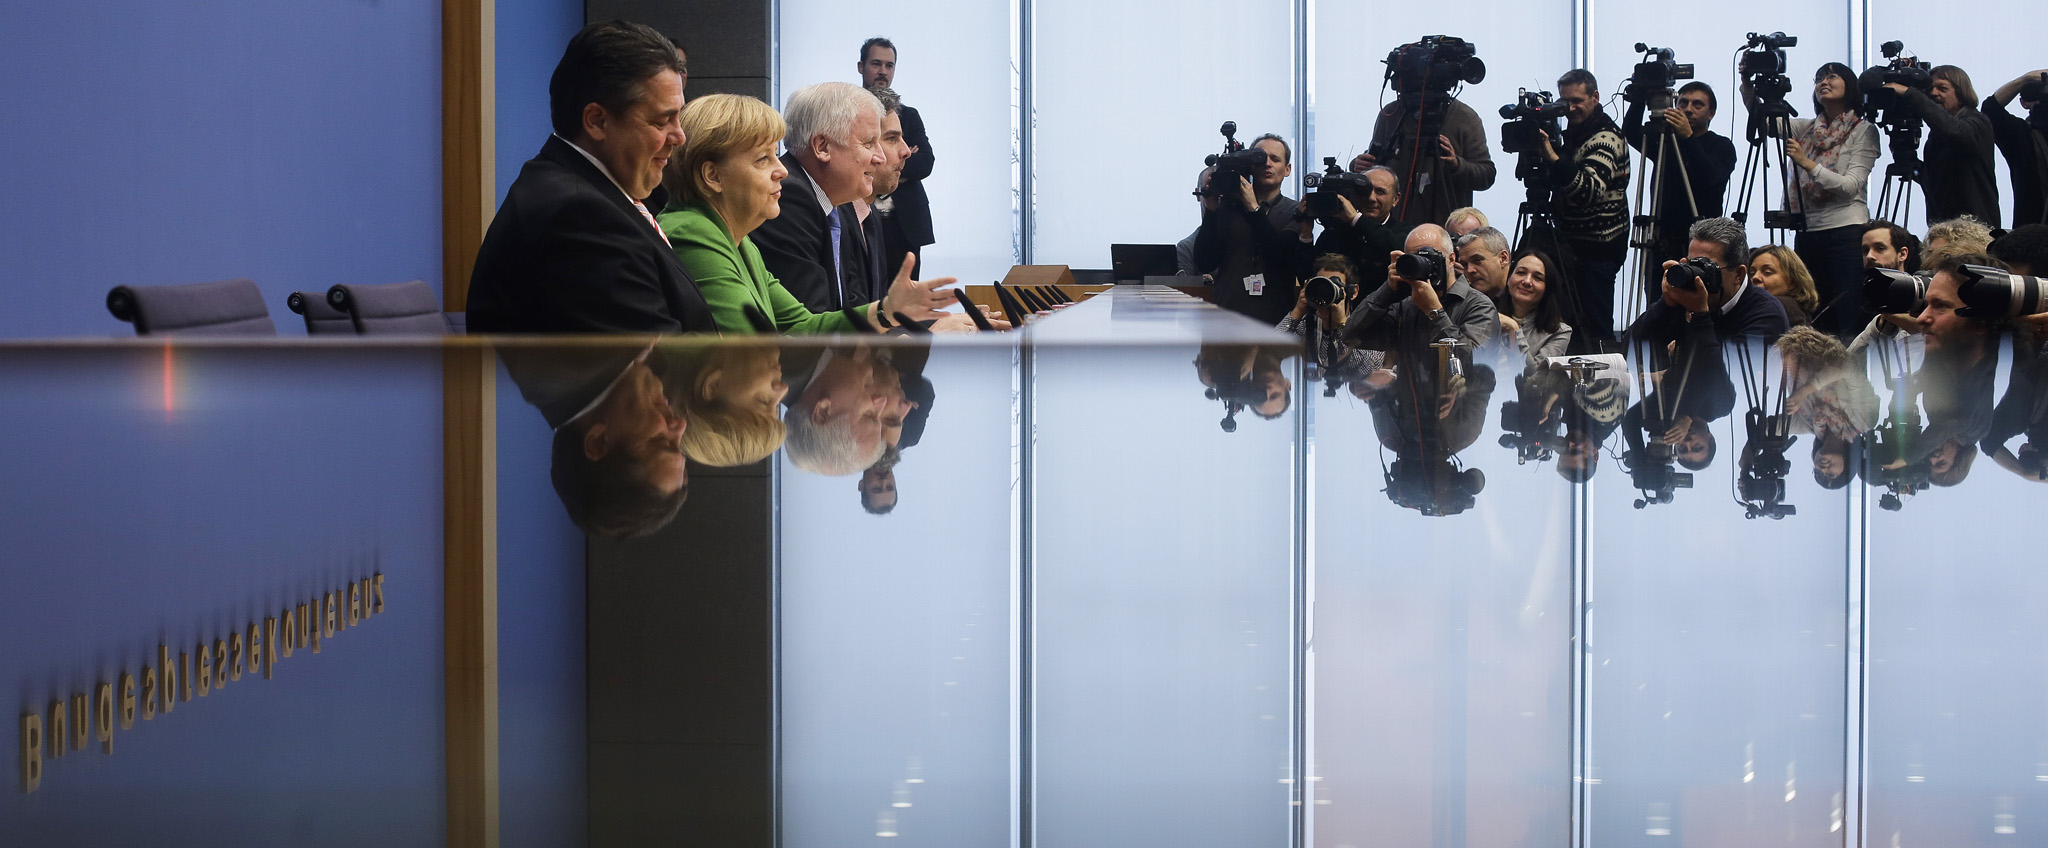 "From left, German Social Democratic Party (SPD), chairman  Sigmar Gabriel, Chancellor and chairwoman of the Christian Democratic Union (CDU), Angela Merkel and the chairman of the Christian Social Union (CSU), Horst Seehofer are reflected as they brief the media at a news conference after they signed  a coalition agreement in Berlin, Germany, Wednesday, Nov. 27, 2013. On Wednesday night Chancellor Angela Merkel's conservatives and Germany's main center-left party reached a deal to form a new government, more than two months after the country's elections. Negotiators from Merkel's Union bloc and the Social Democrats concluded their agreement to form a ""grand coalition"" of Germany's biggest parties after a final all-night round of talks.  (AP Photo/Markus Schreiber)"